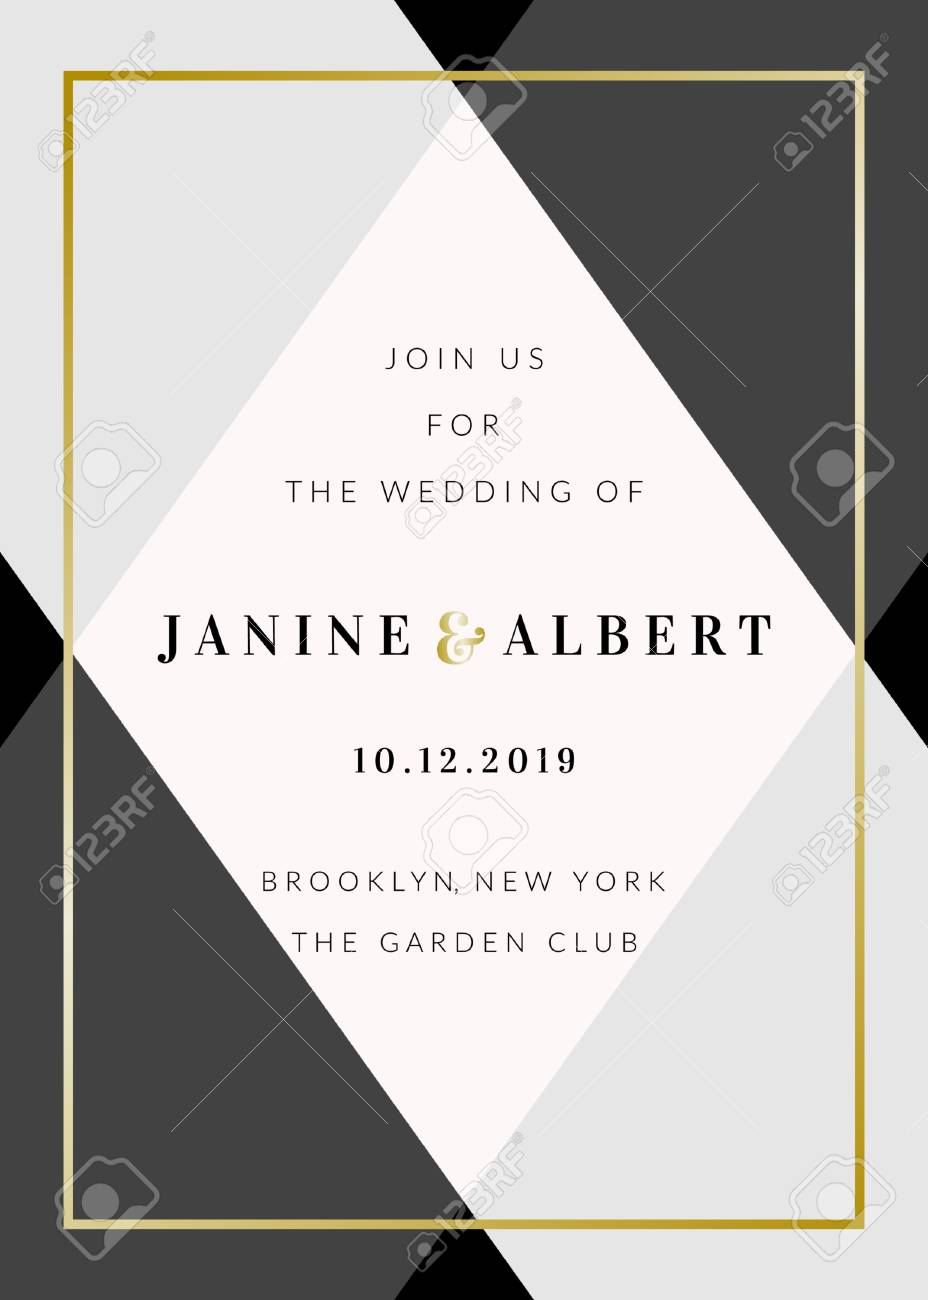 Wedding Invitation Template With Geometric Elements In Black